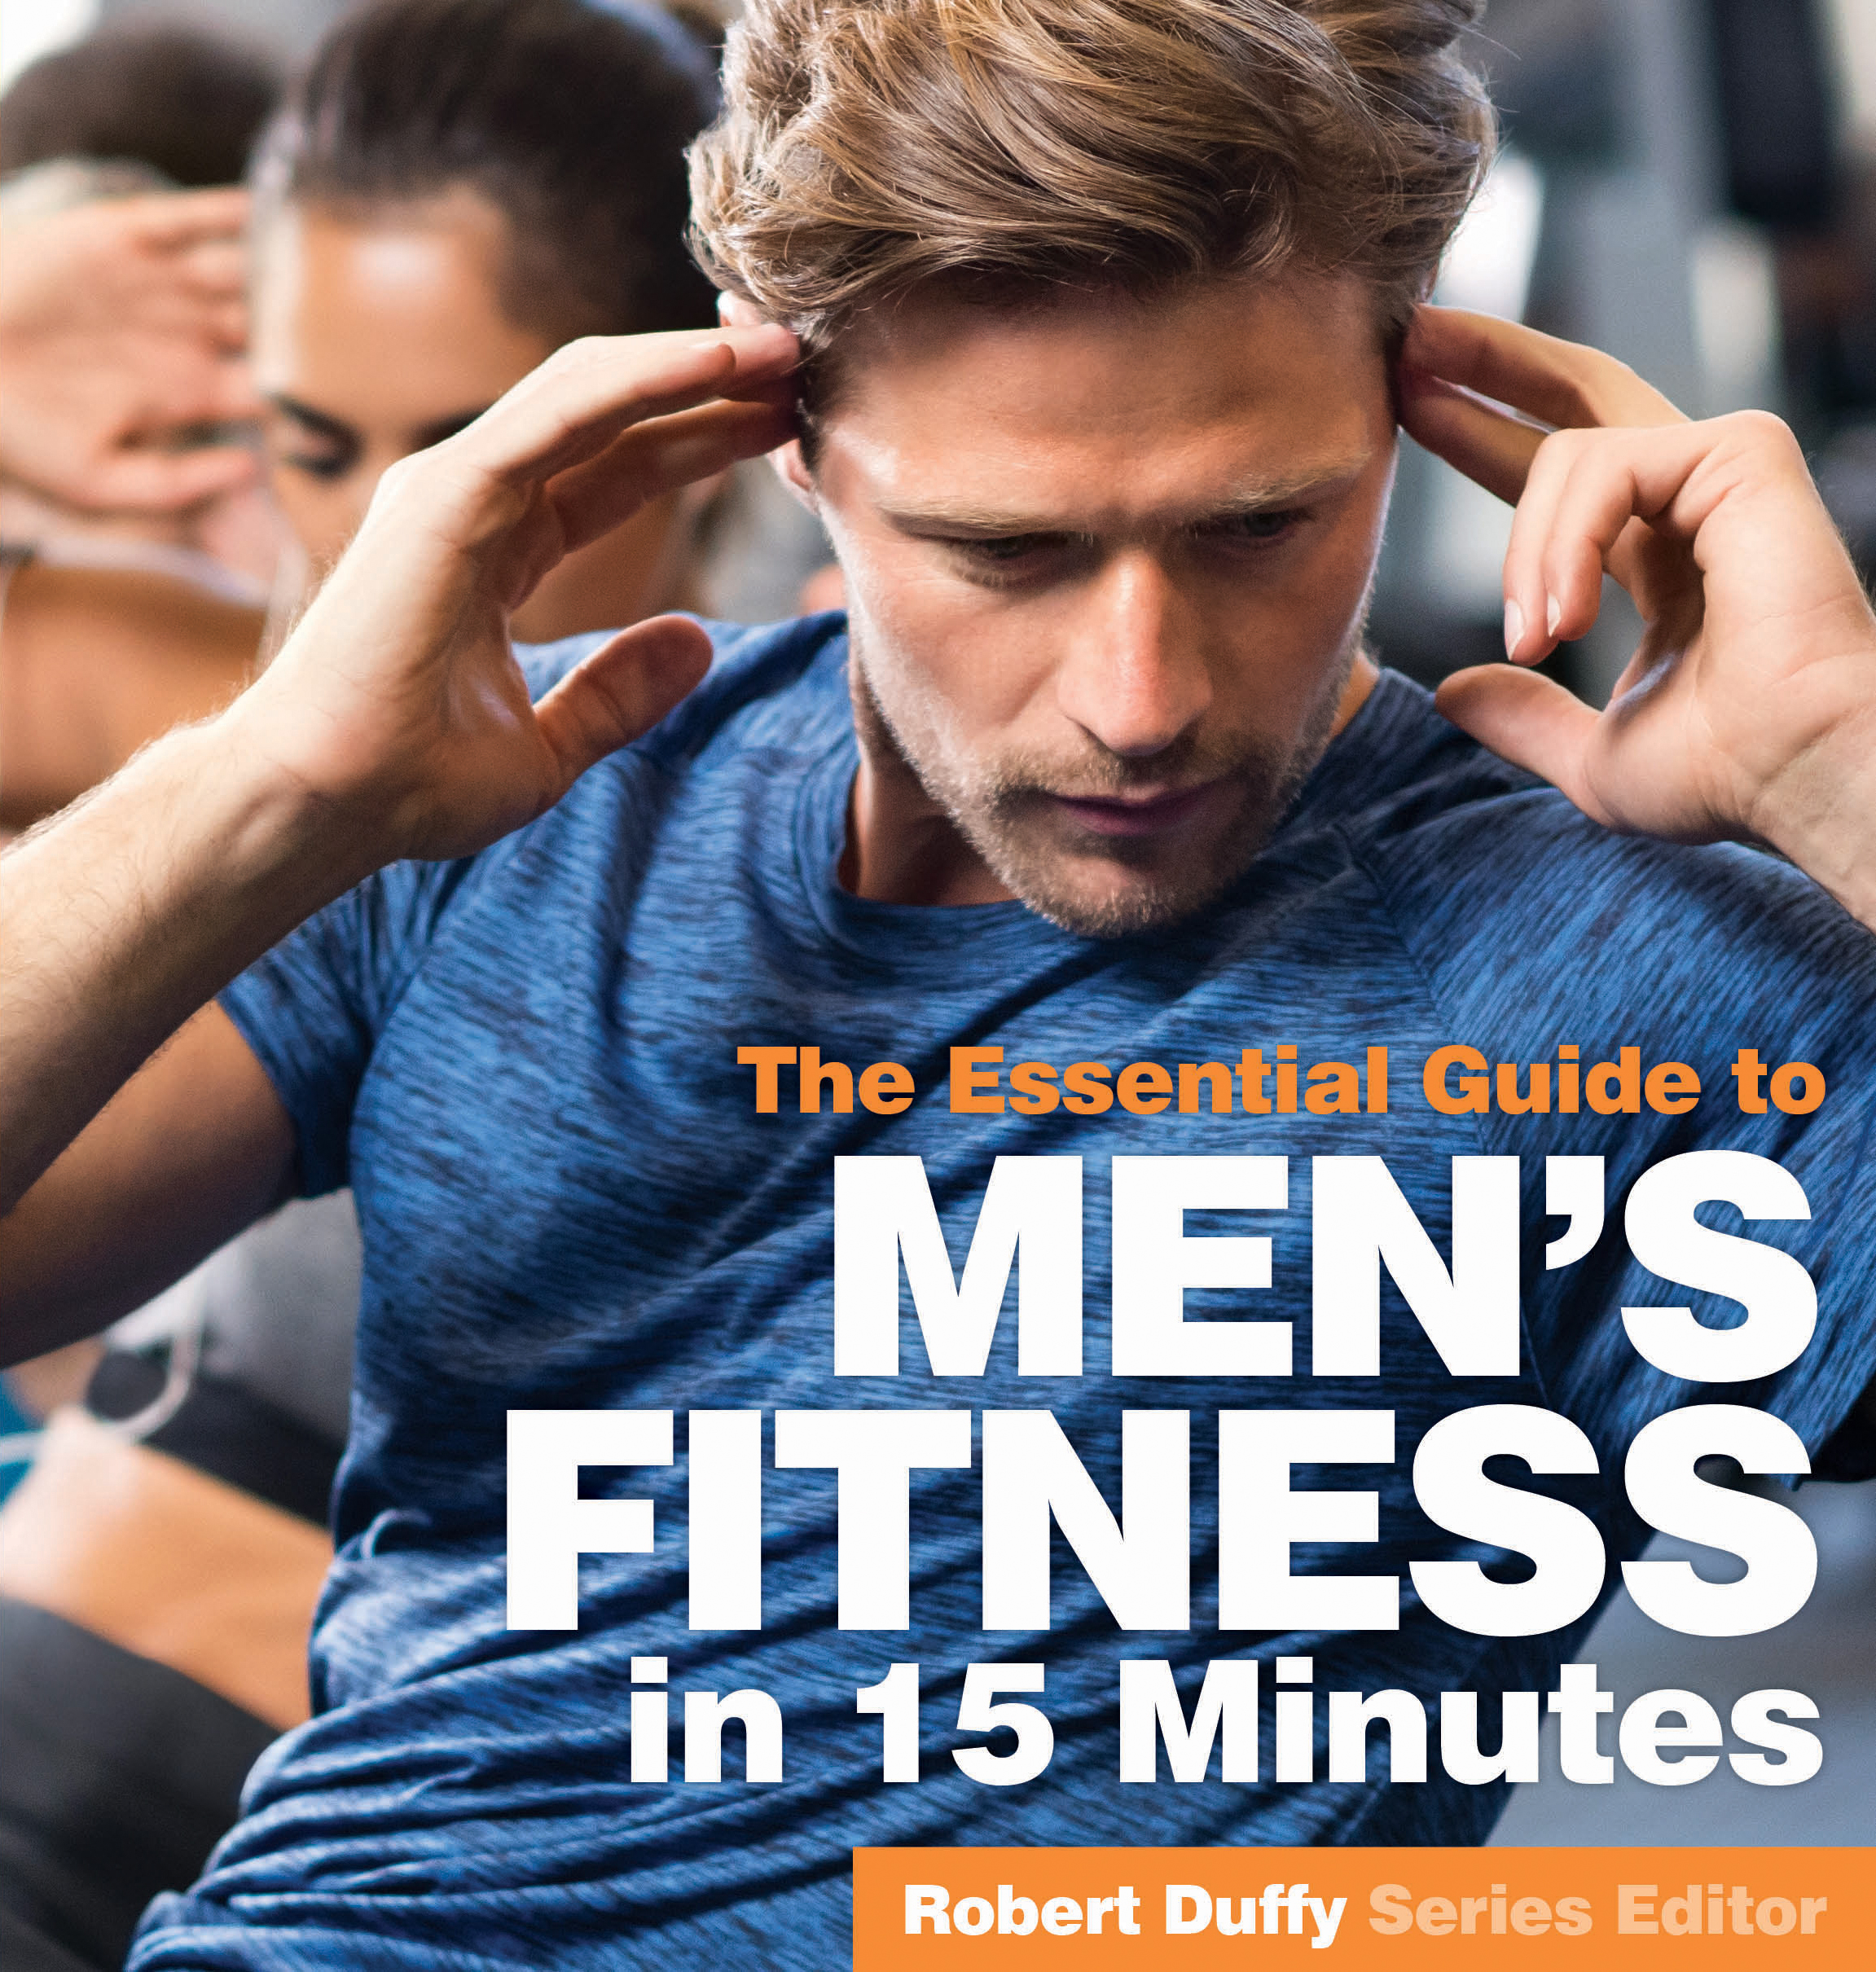 The Essential Guide To Men's Fitness In 15 Minutes